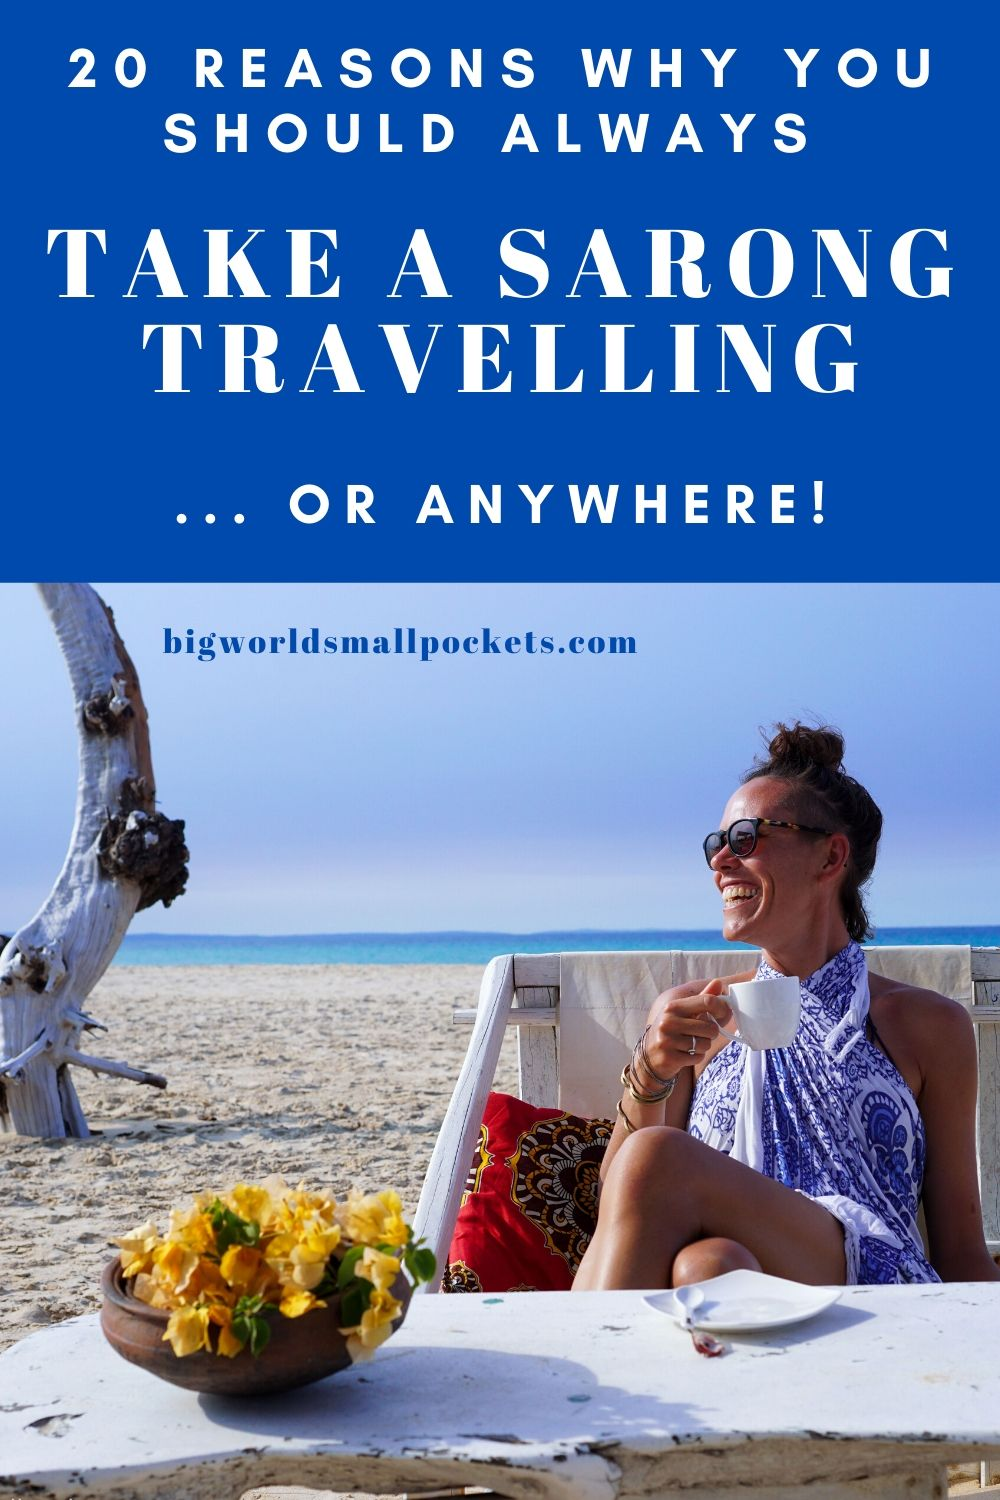 20 Reasons Why You Should Always Take a Sarong Travelling... or Anywhere!